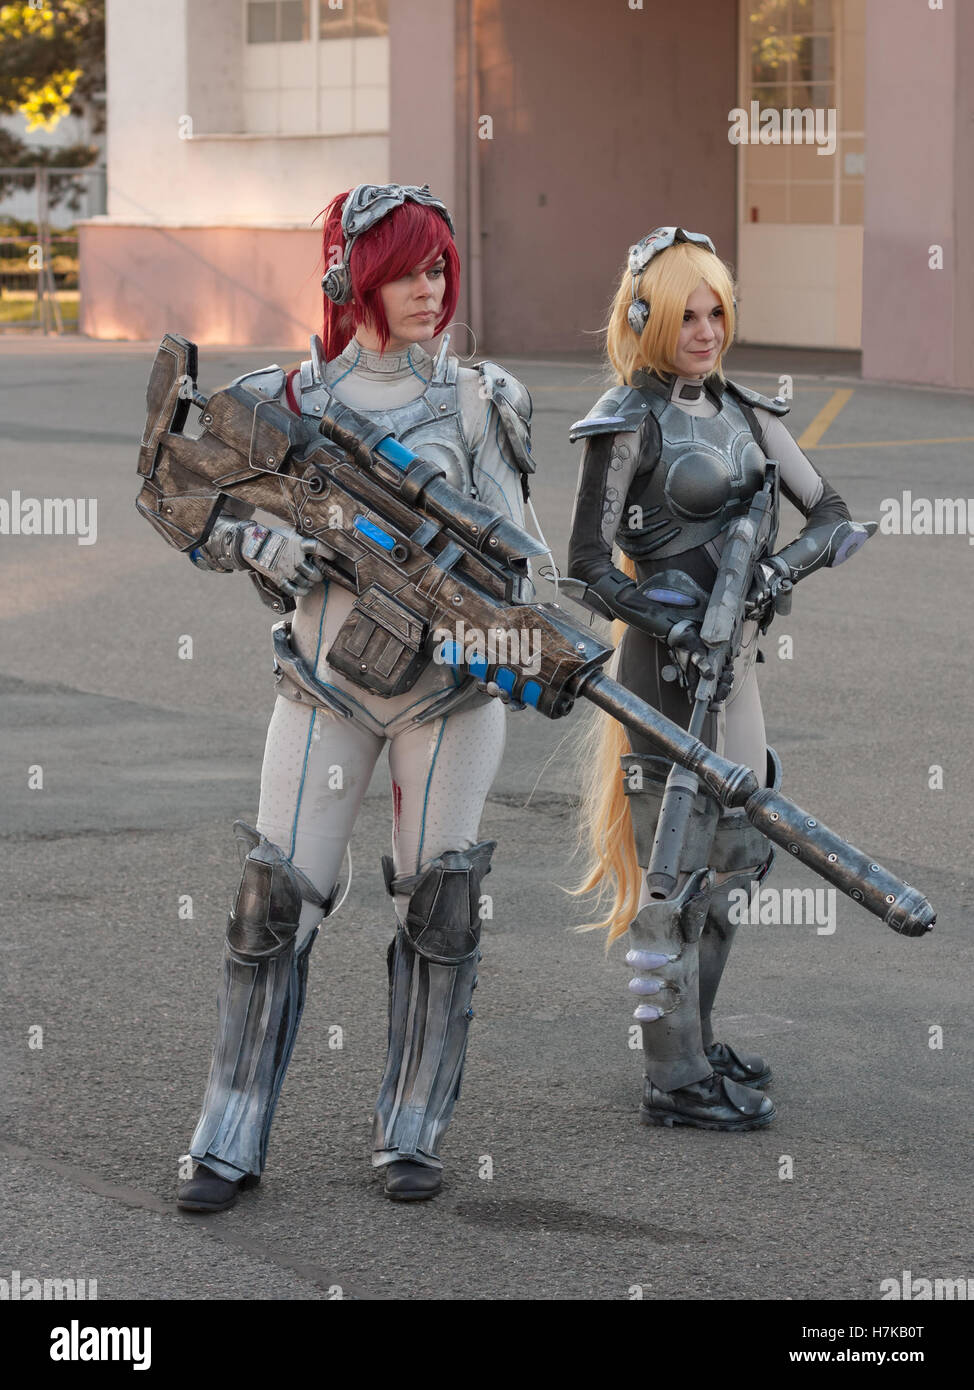 BRNO, CZECH REPUBLIC - APRIL 30, 2016: Two cosplayers dressed as characters  Sarah Kerrigan and Nova Terra  from - Stock Image